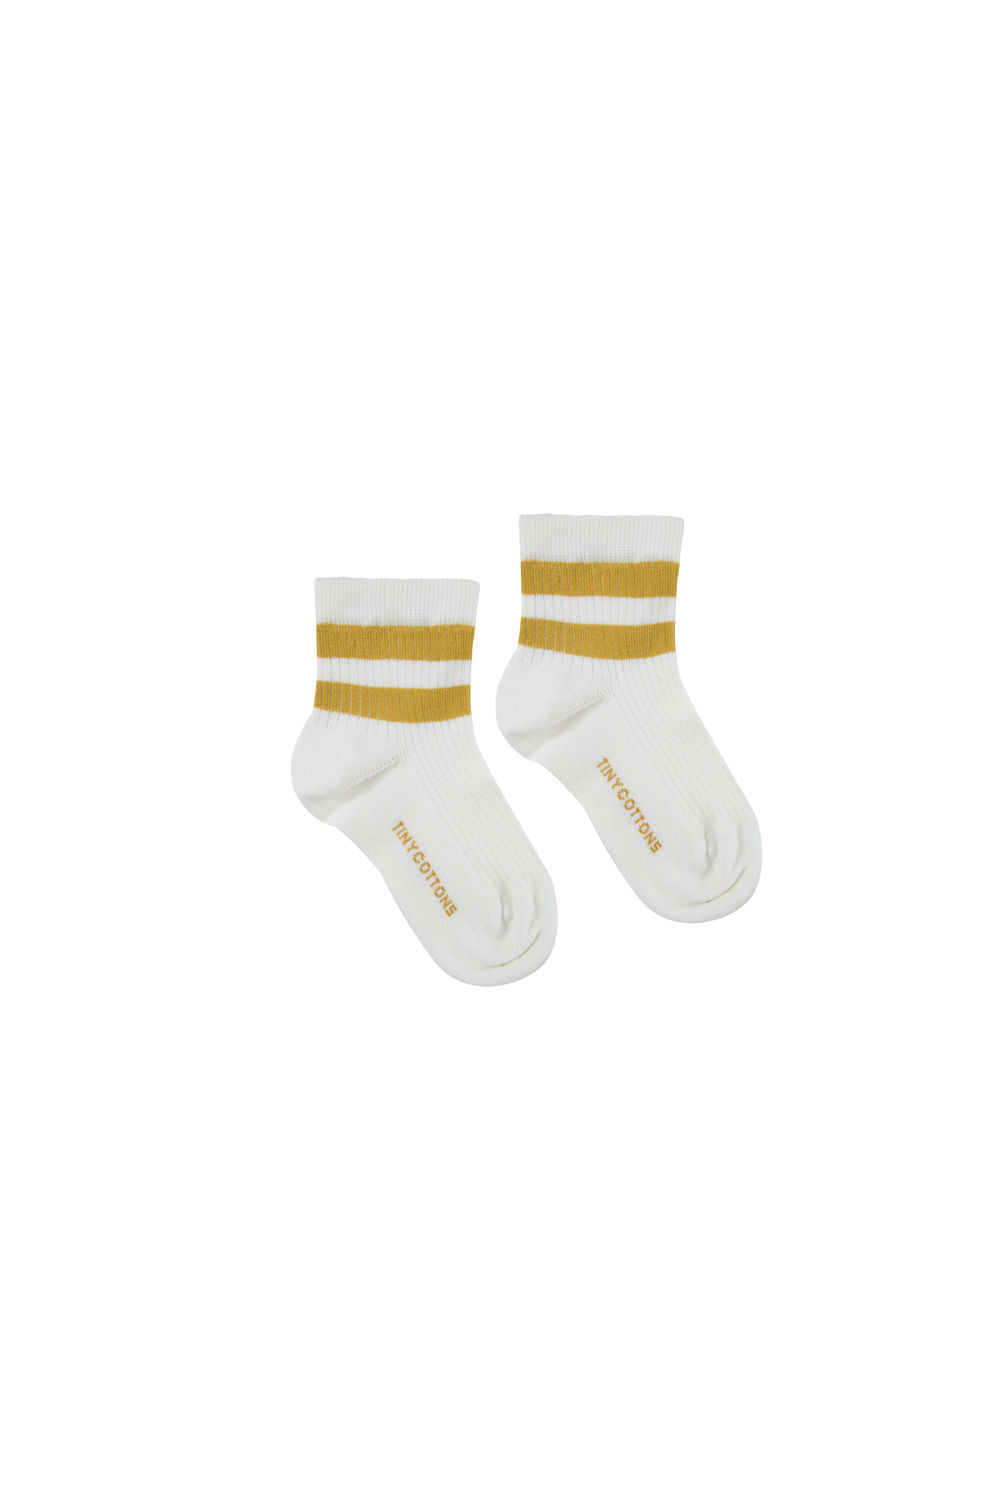 TINY COTTONS STRIPES RIB SOCKS,OFFWHITE